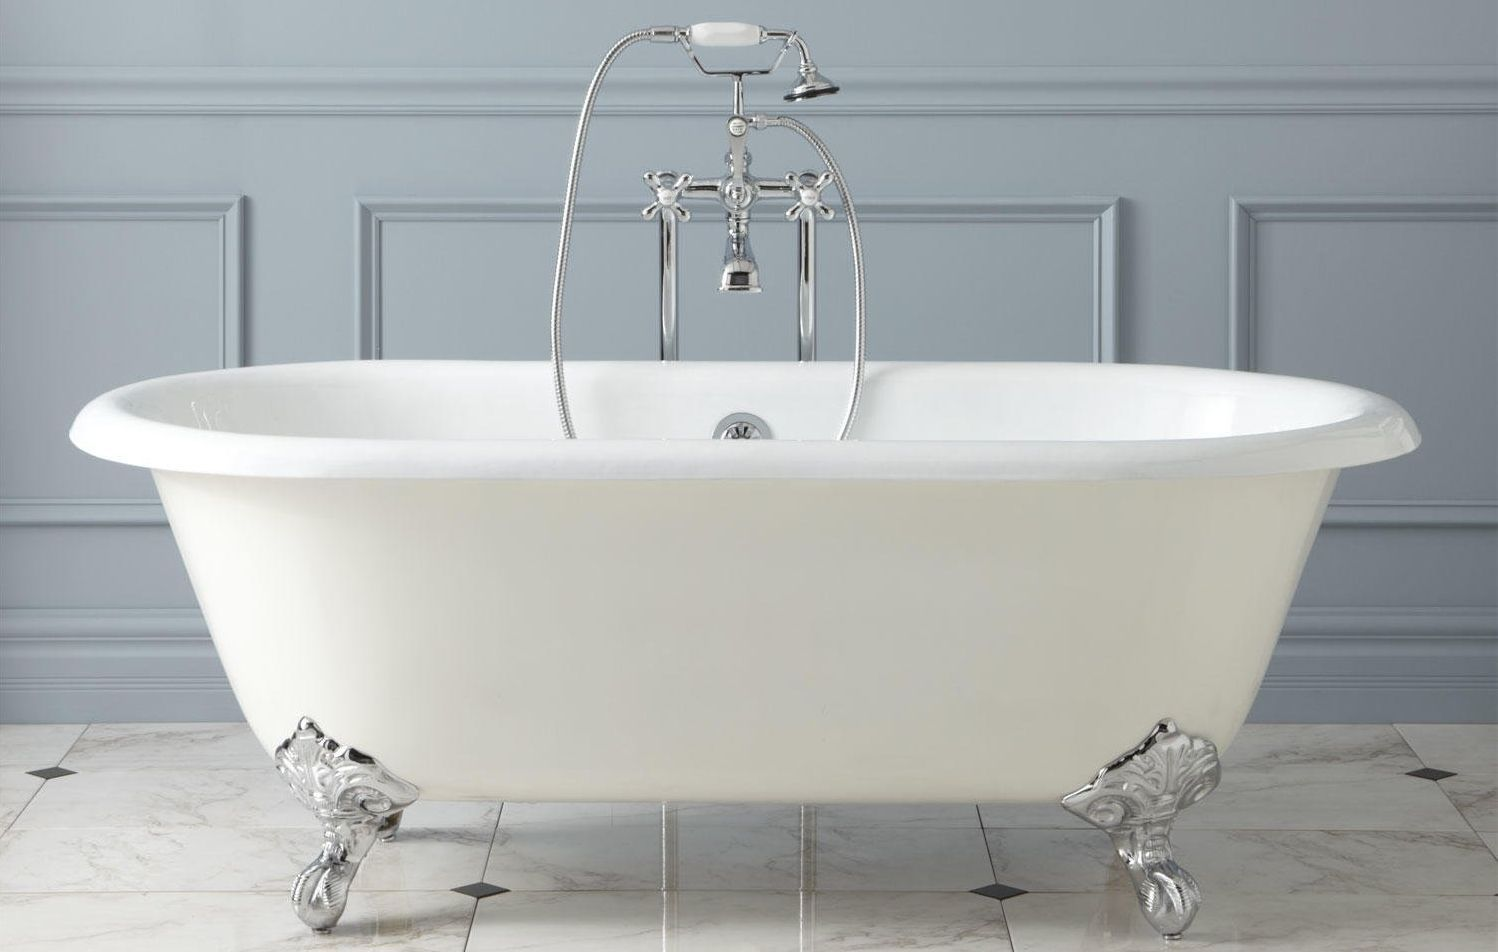 Bathtub Refinishing Cost Estimates